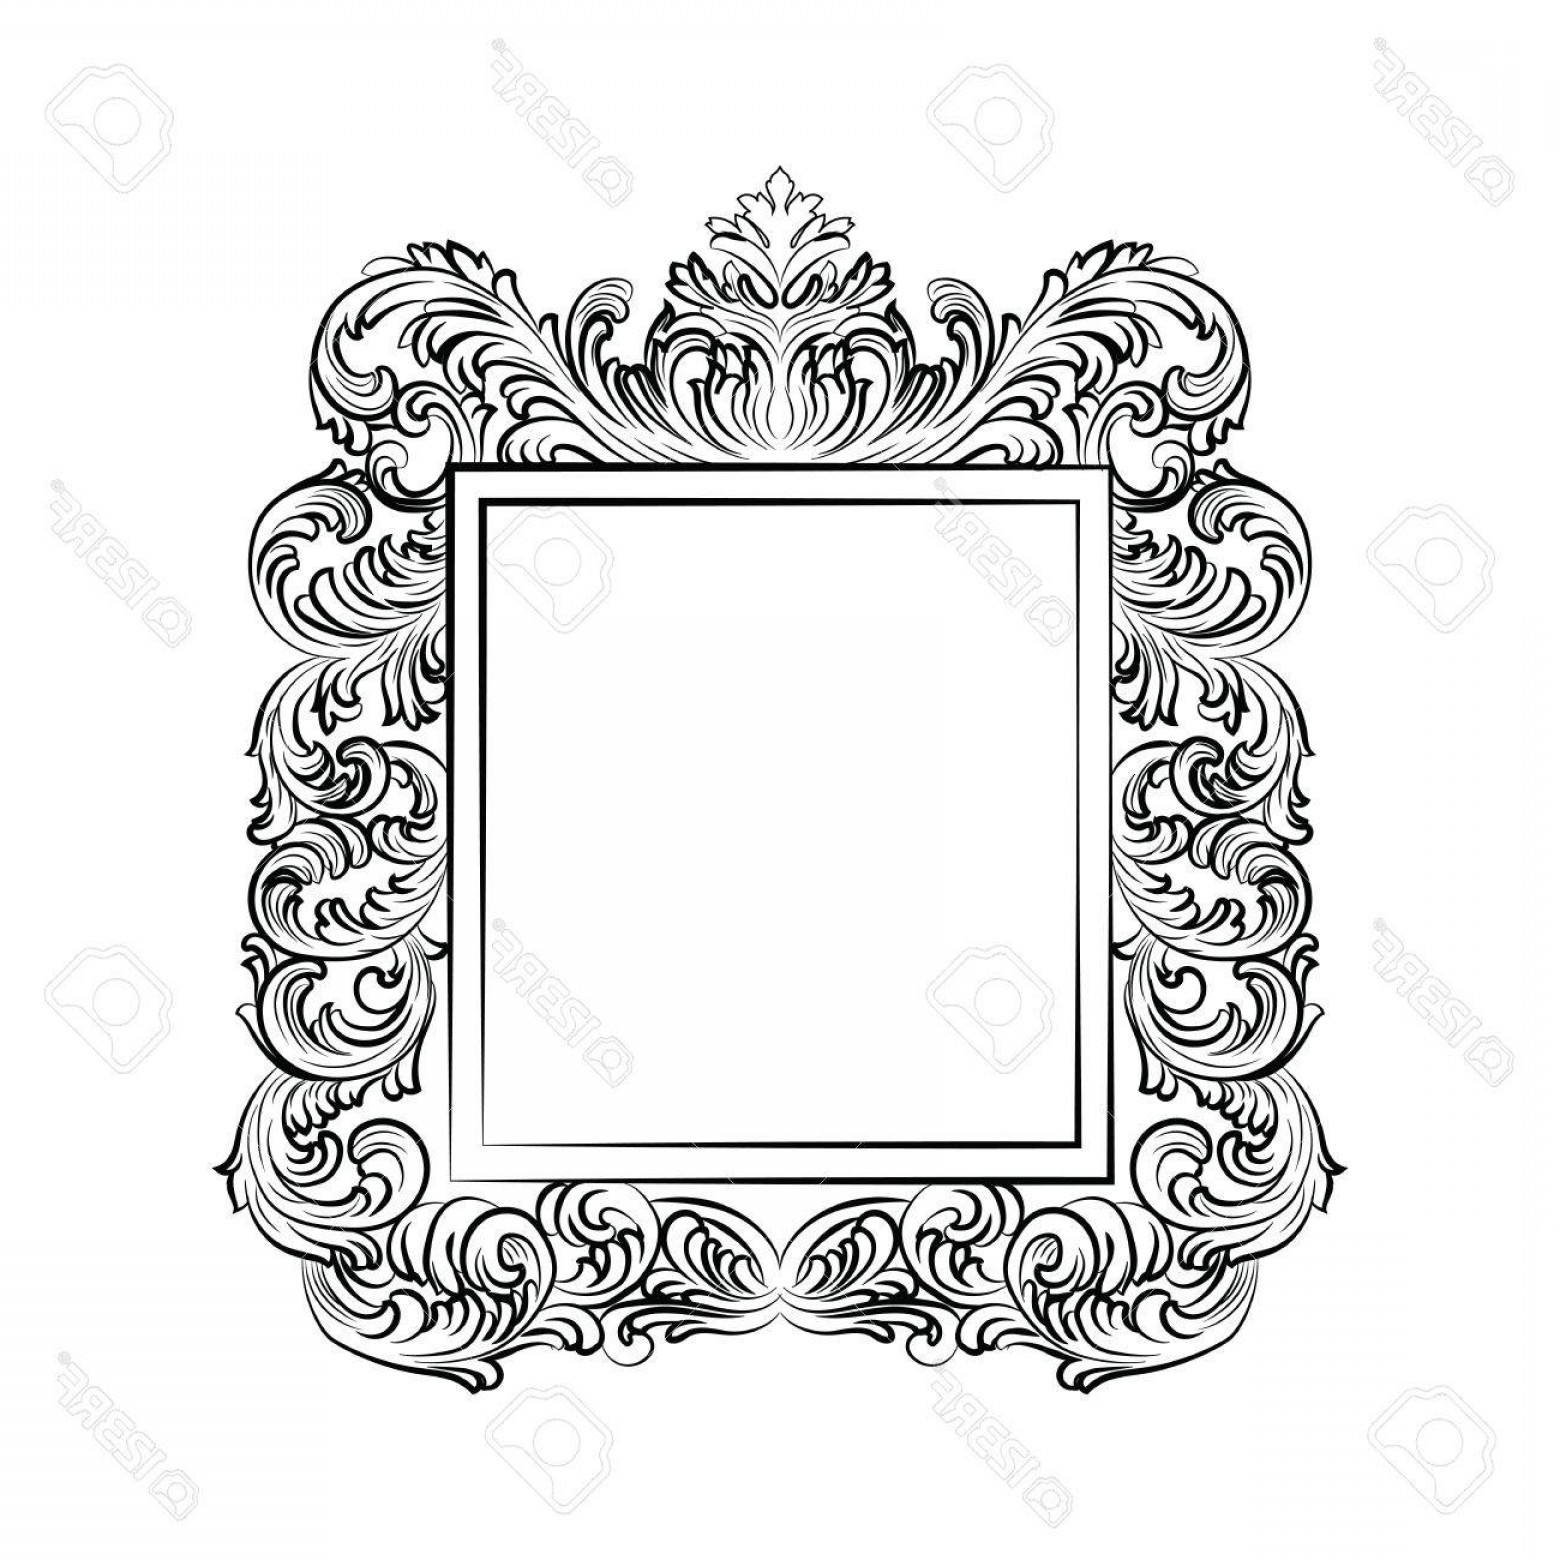 Rococo Frame Vector: Photostock Vector Exquisite Baroque Rococo Mirror Frame Vector French Luxury Frame With Rich Carved Ornaments Wall Fra